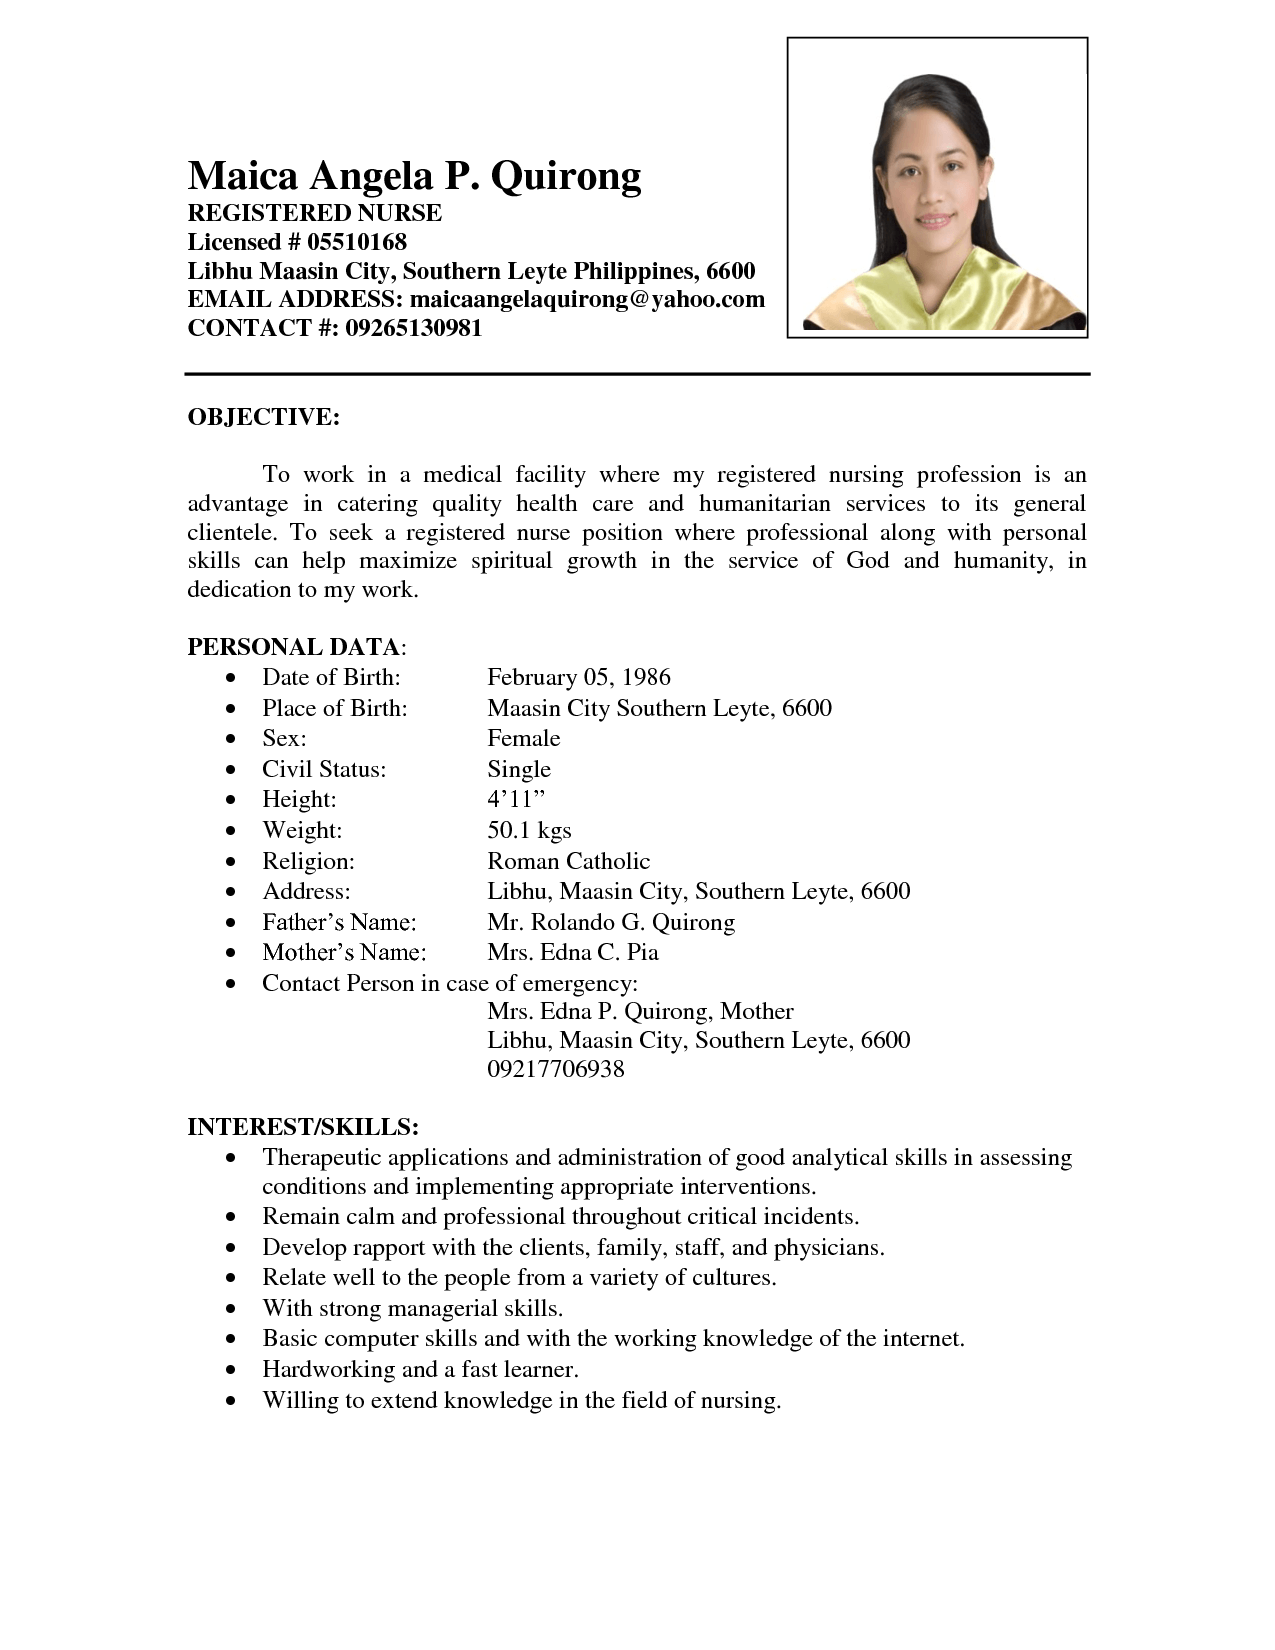 resume nurses sample resumes nursing templates easyjob best free home design idea inspiration - Nursing Student Resume Sample